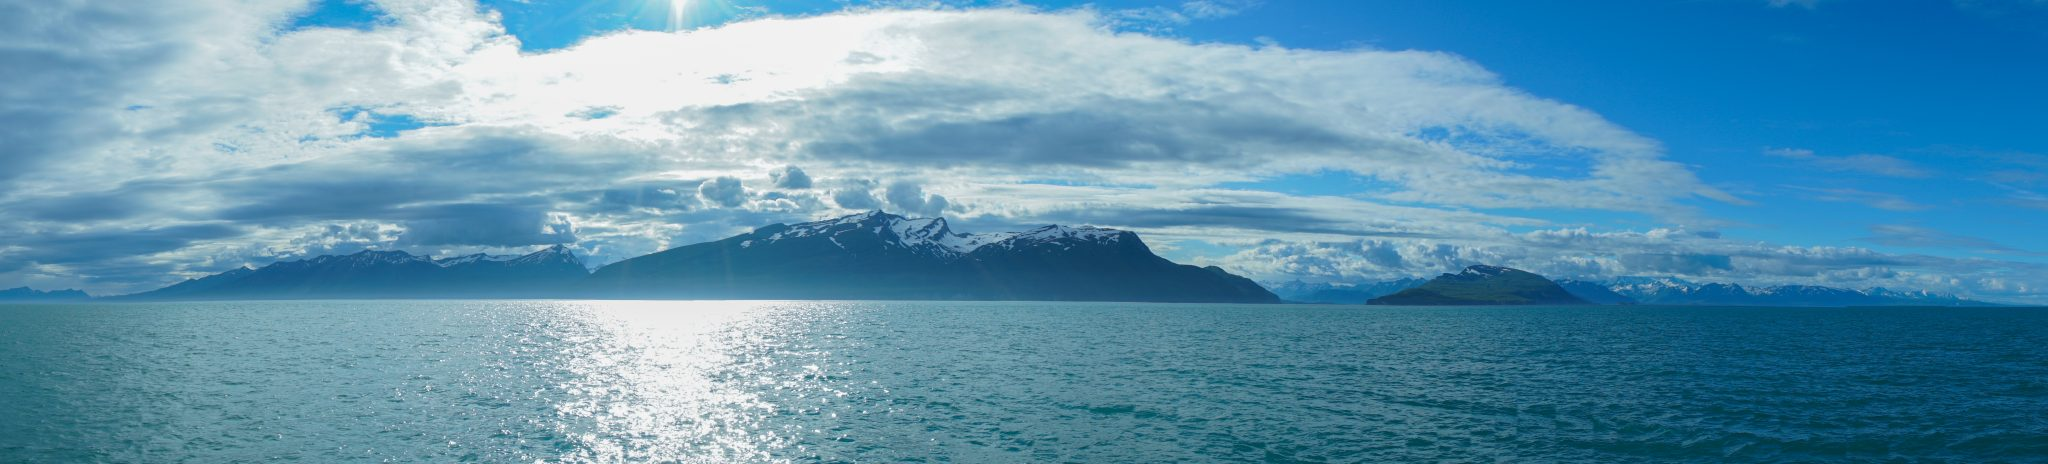 alaska-cook-inlet-panorama-mountains-snug-harbor-DSC06247